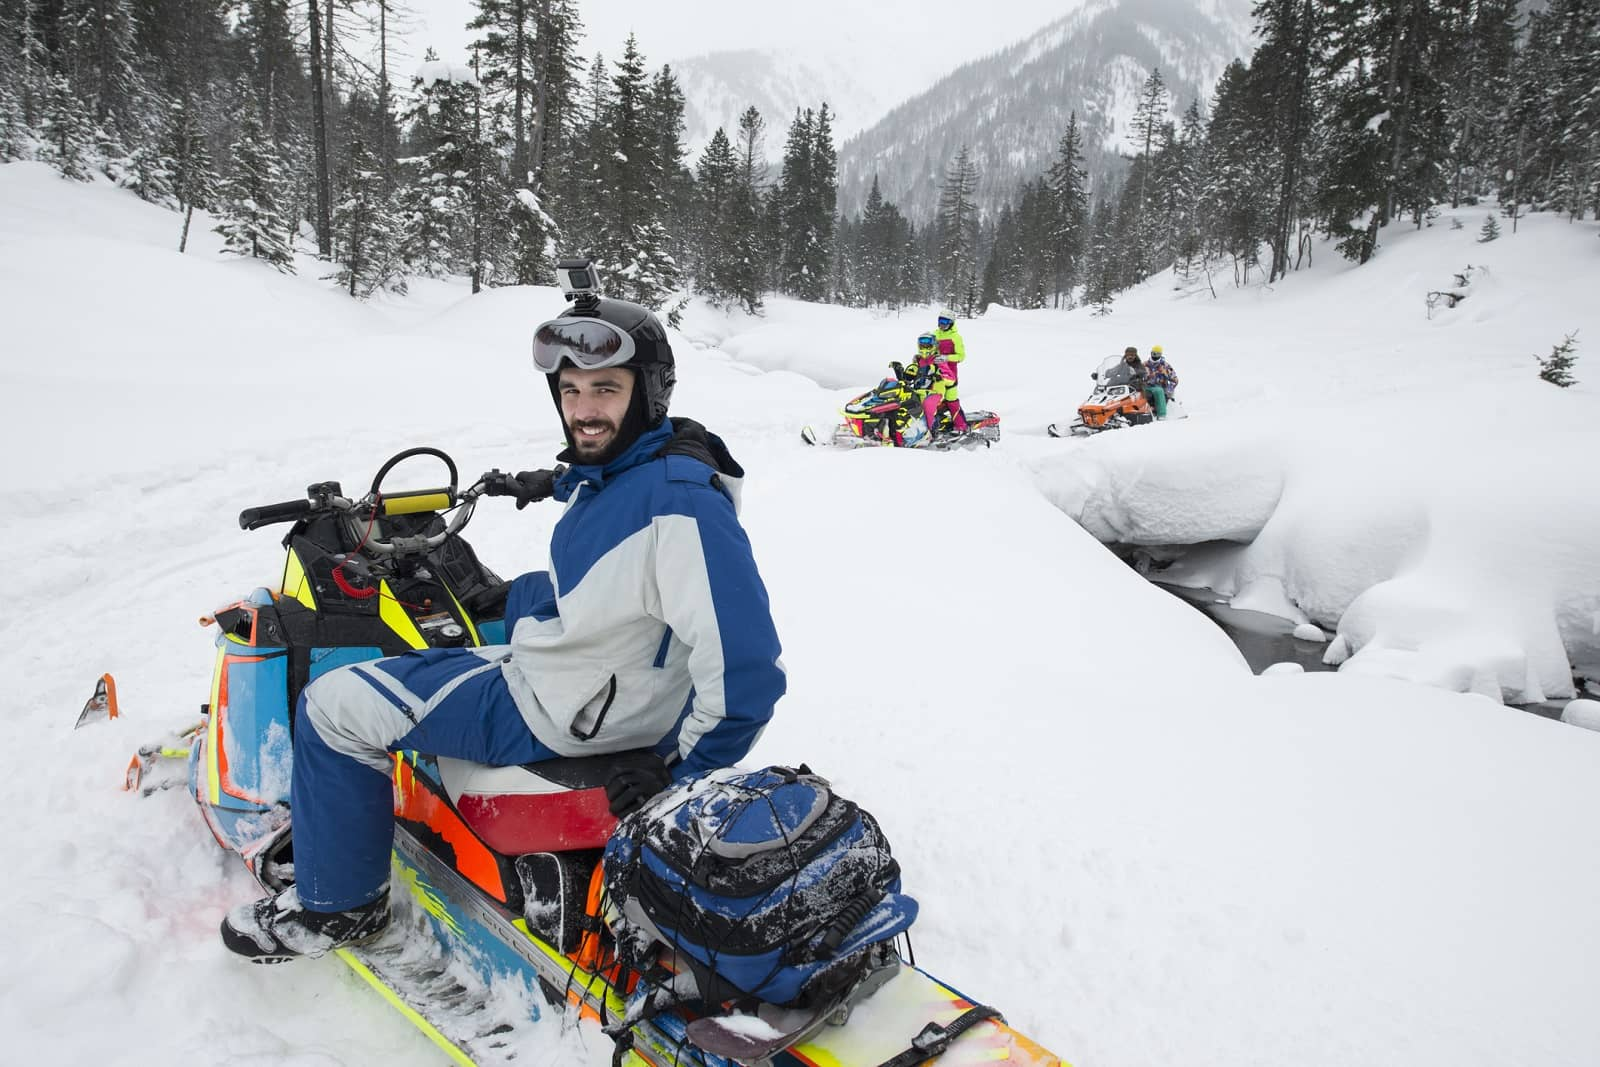 Snowmobilers riding through forest